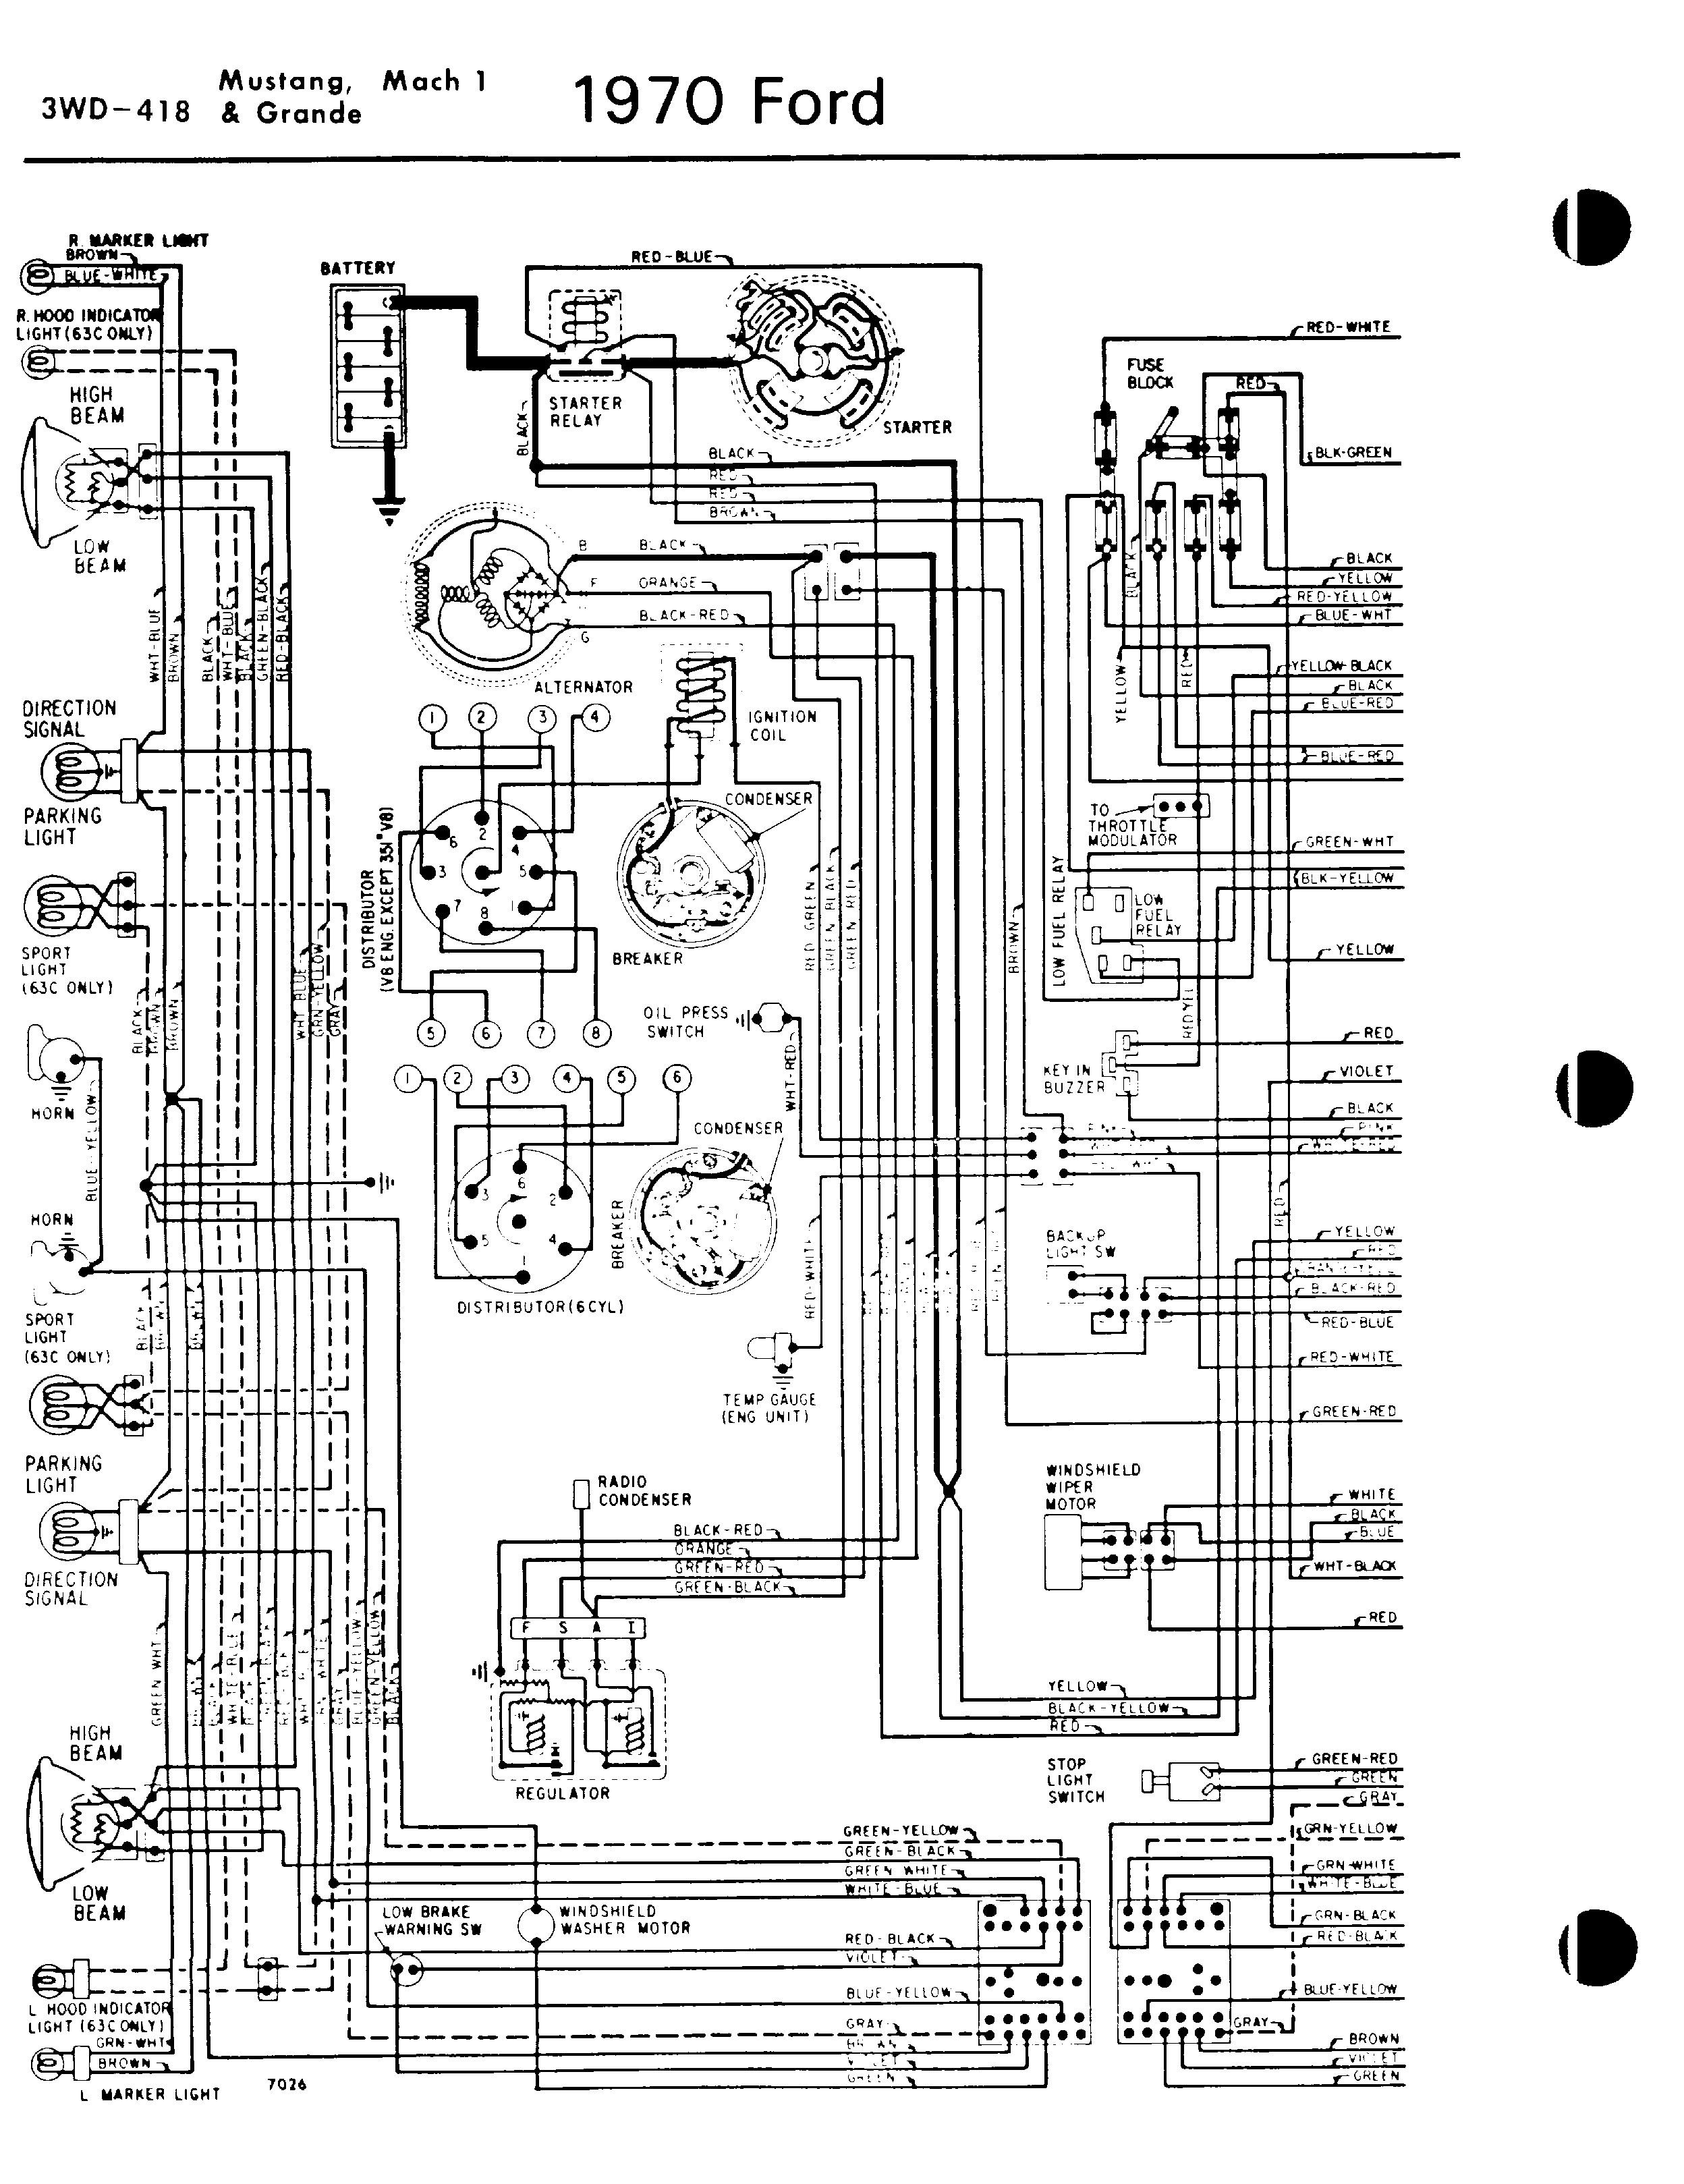 John Deere 440 Wiring Diagram Page 3 And Schematics 4440 Free Picture Raven Diagrams Together With 4600 Parts Including Stunning